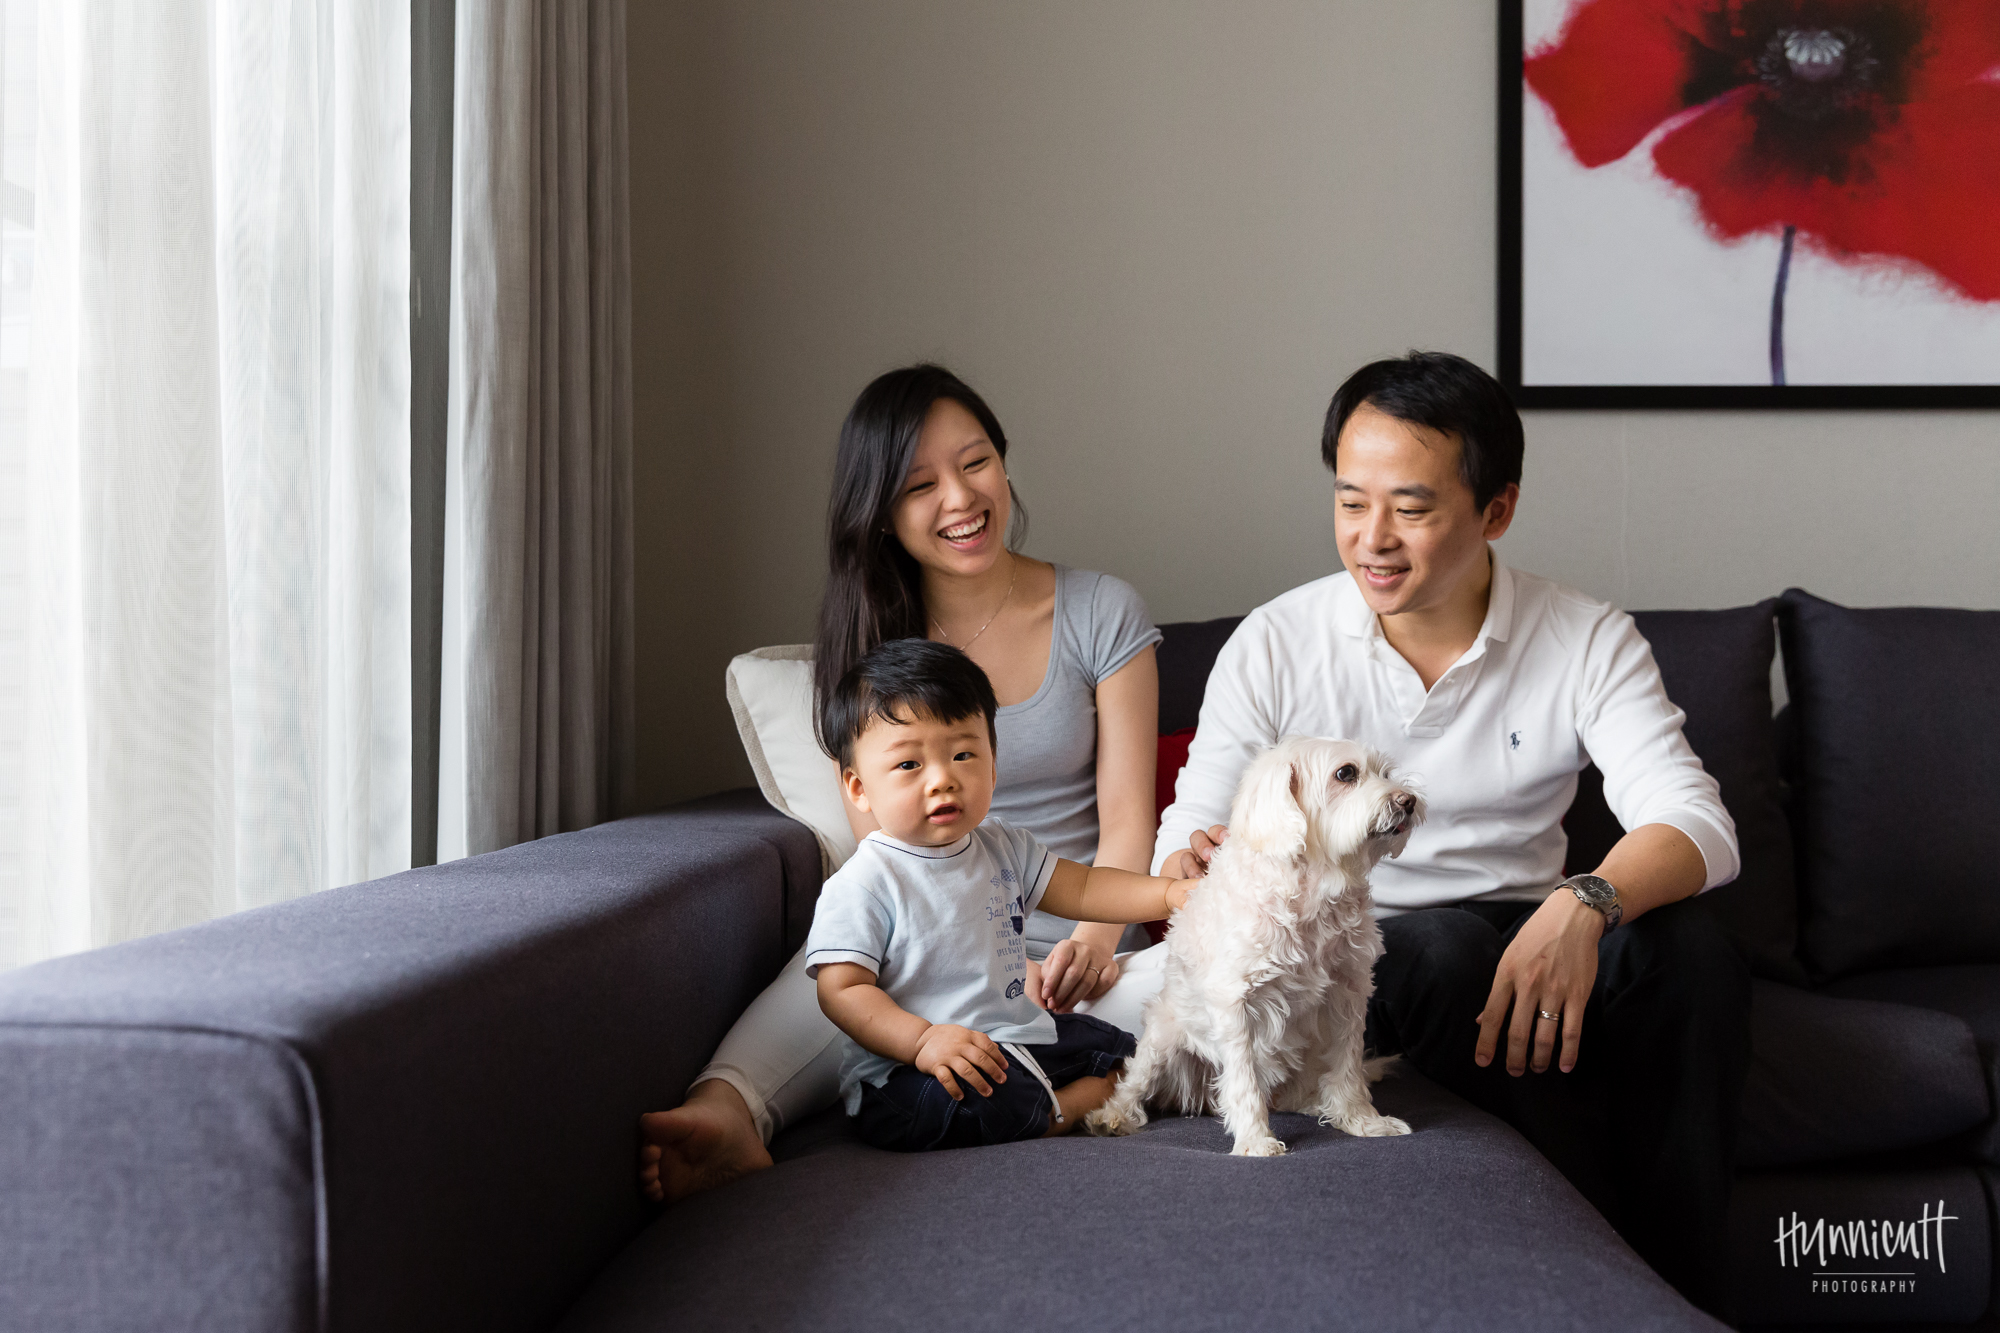 Indoor-Natural-Light-Family-HunnicuttPhotography-RebeccaHunnicuttFarren-Taichung-Taiwan-7